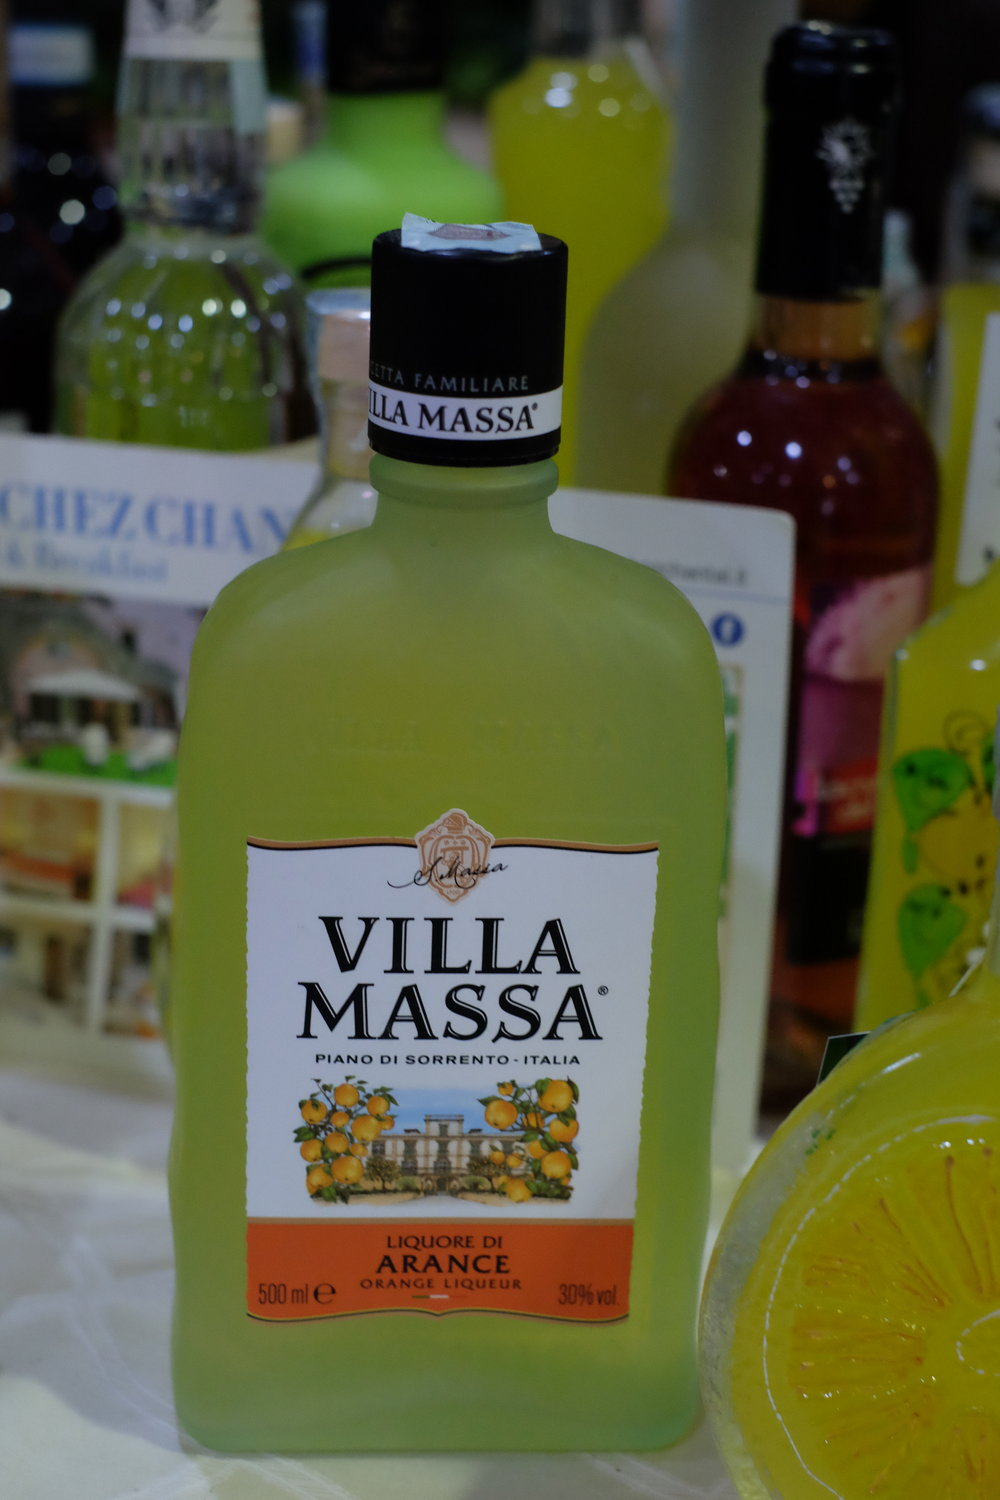 The local limoncello.